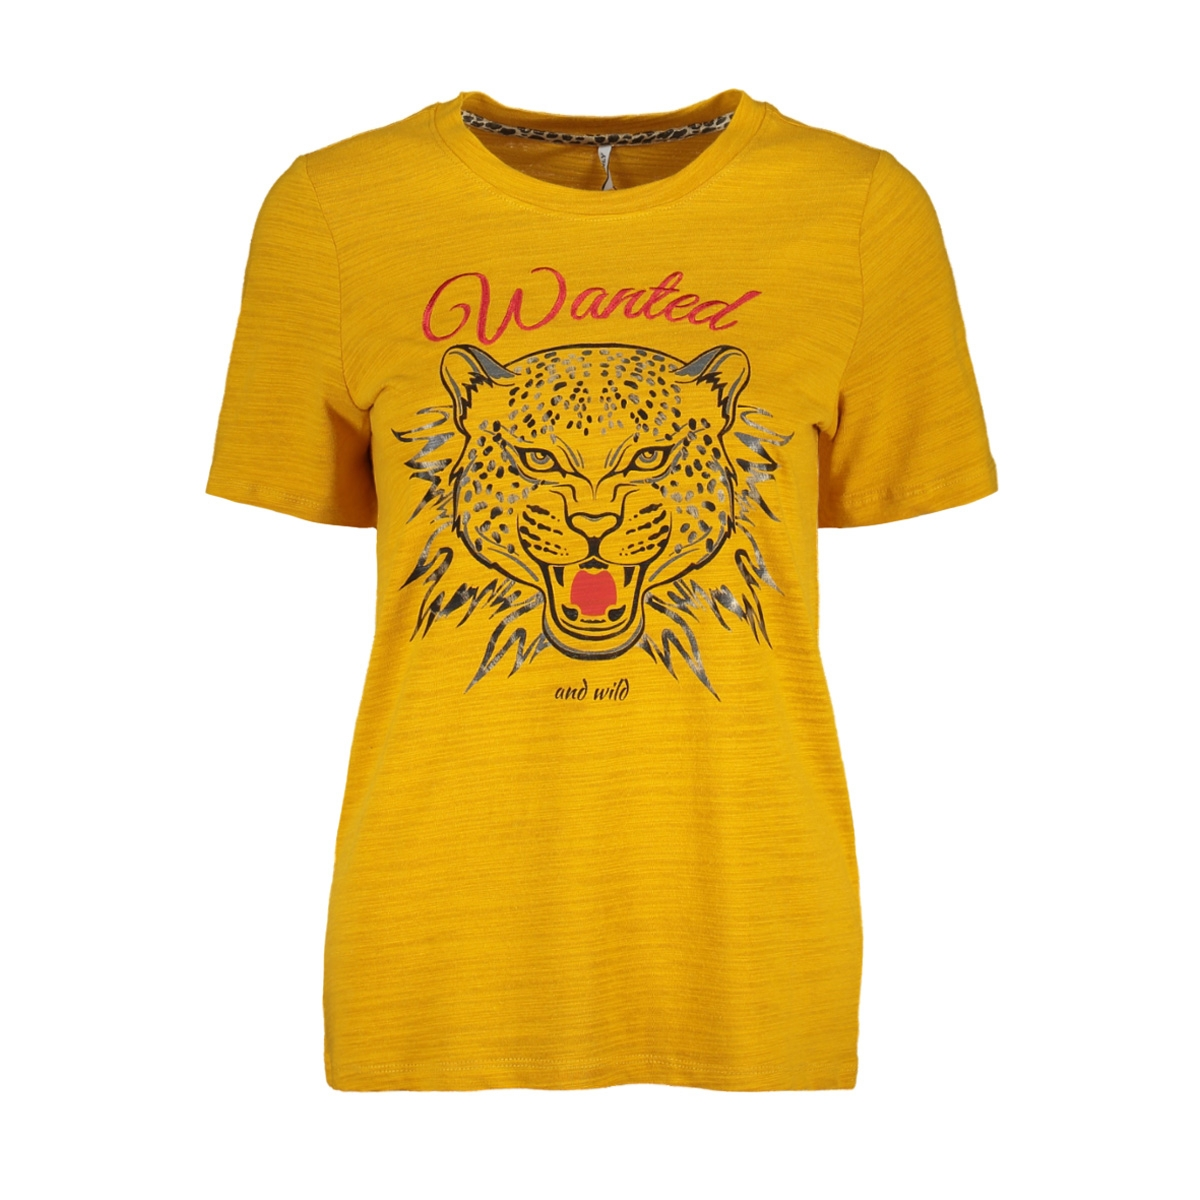 onlkindra s/s wanted top box jrs 15168493 only t-shirt golden yellow/tiger